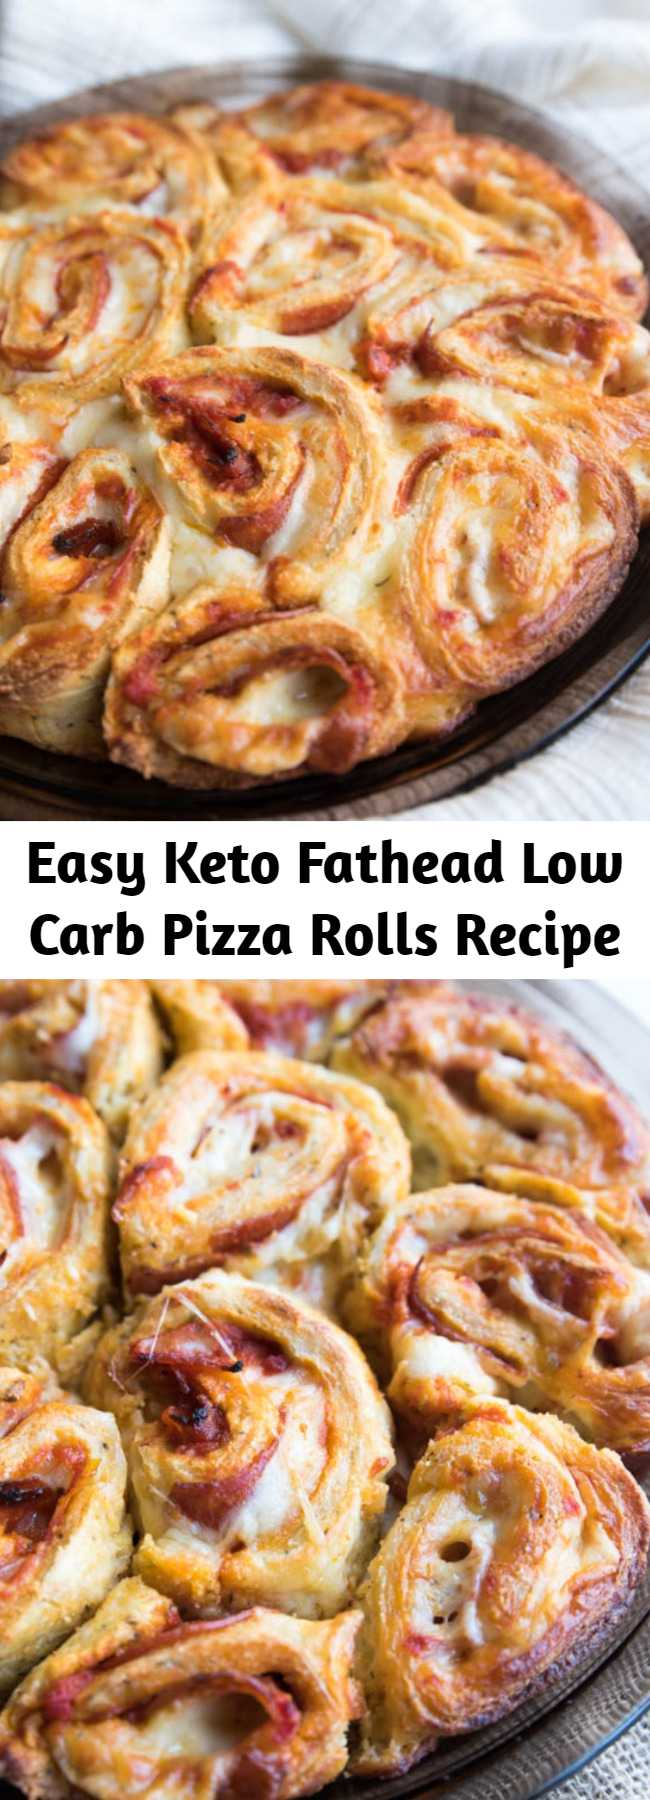 Easy Keto Fathead Low Carb Pizza Rolls Recipe - These are THE BEST KETO FATHEAD LOW CARB PIZZA ROLLS you will have taste! The texture is pretty amazing considering they are grain free, gluten free, nut free and low carb!